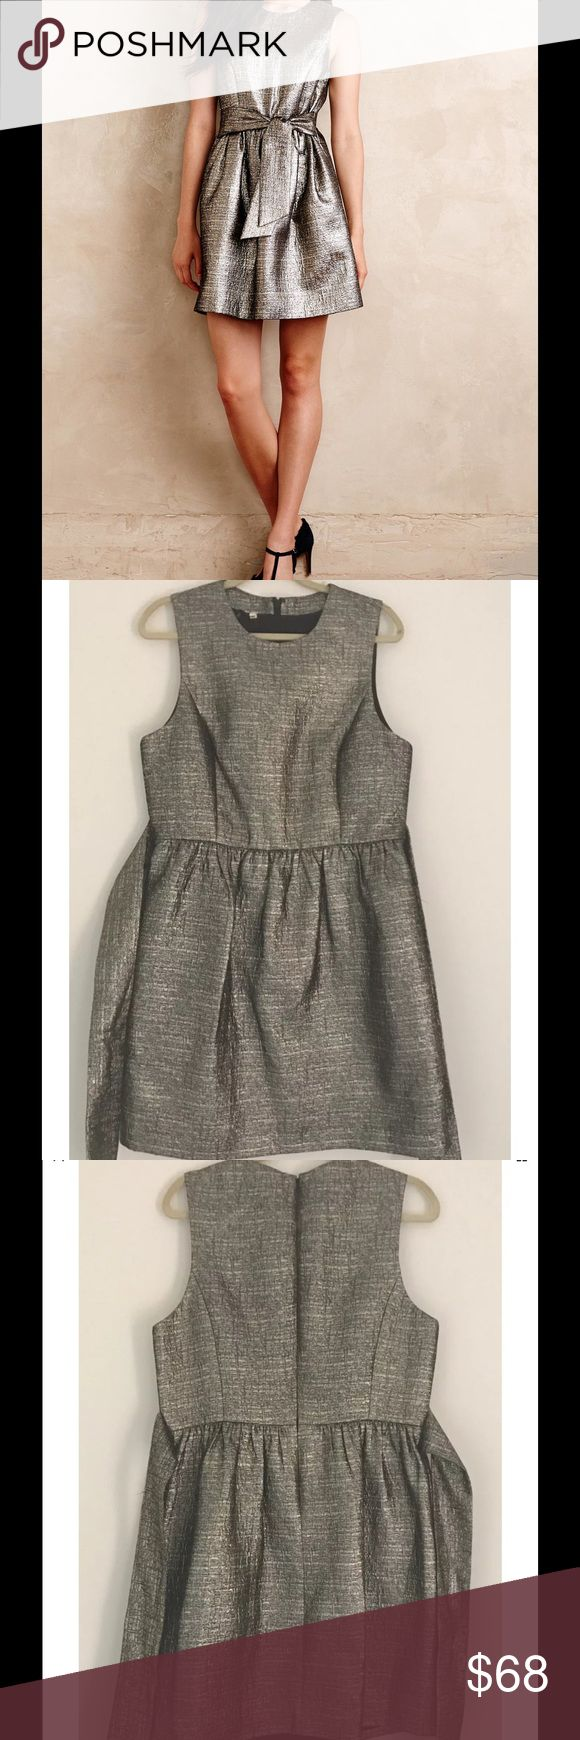 Anthropologie 4. COLLECTIVE Shimmered Neve Dress New condition! Anthropologie Dresses